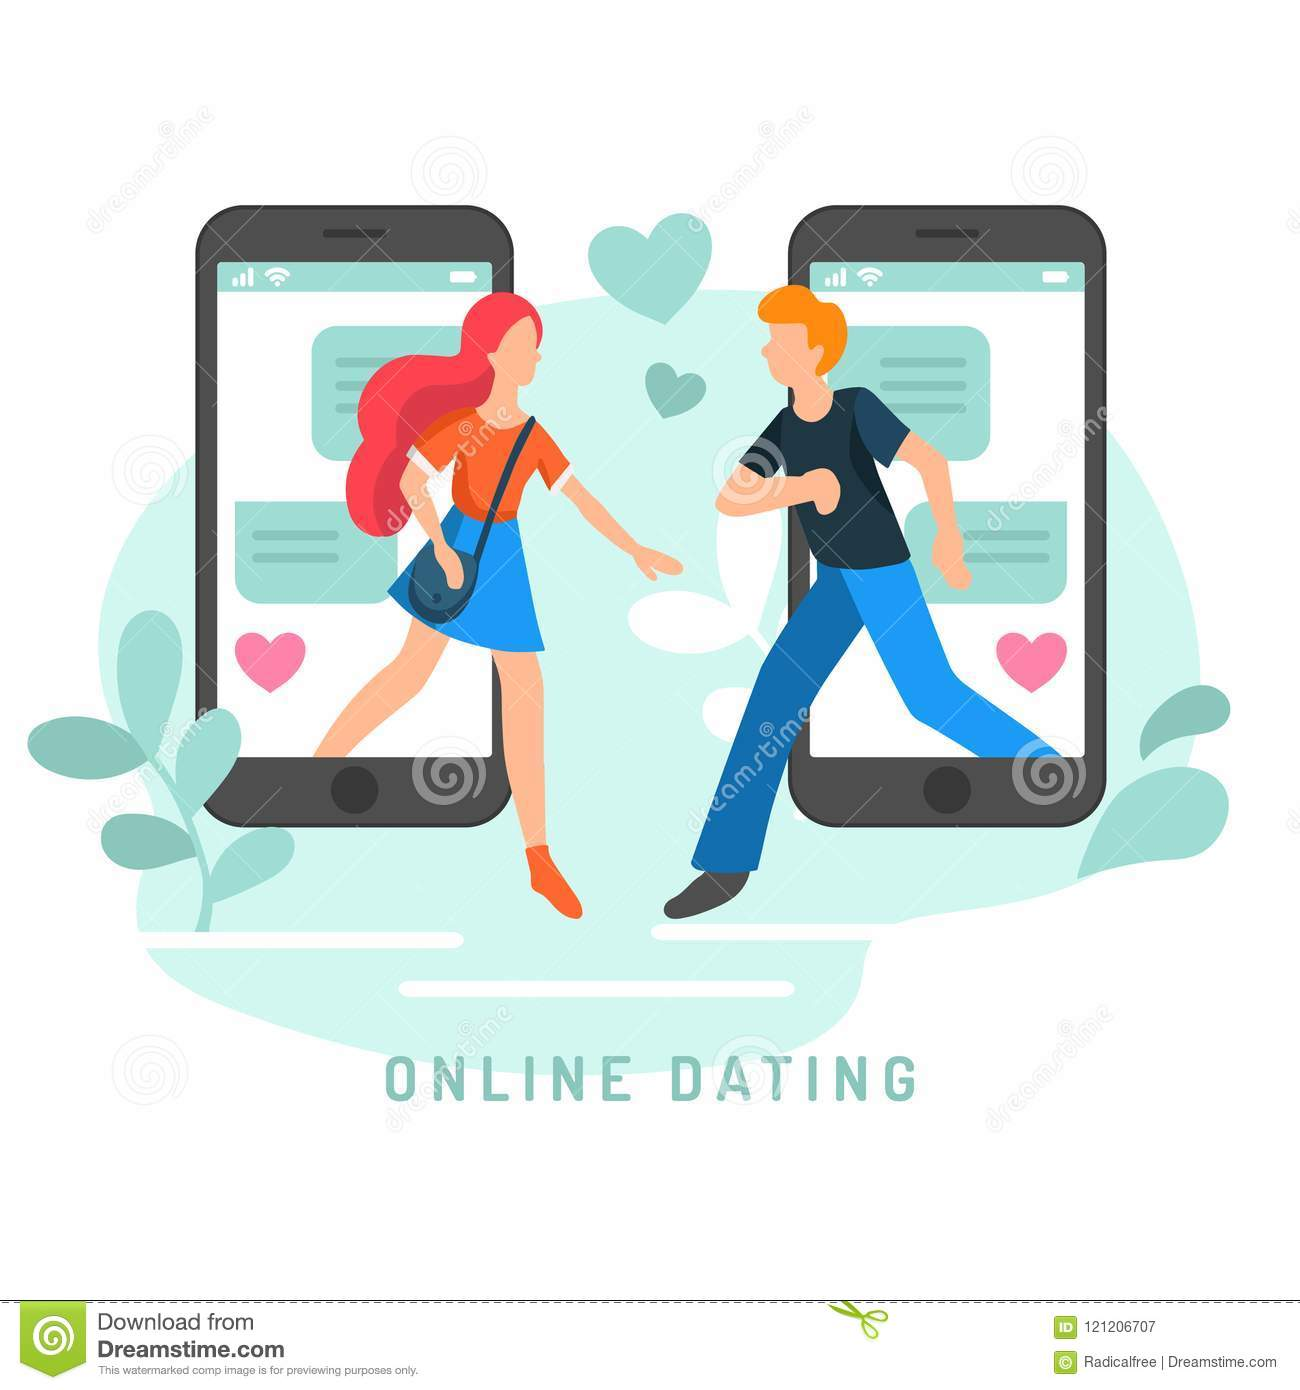 Dating apps for 20-30